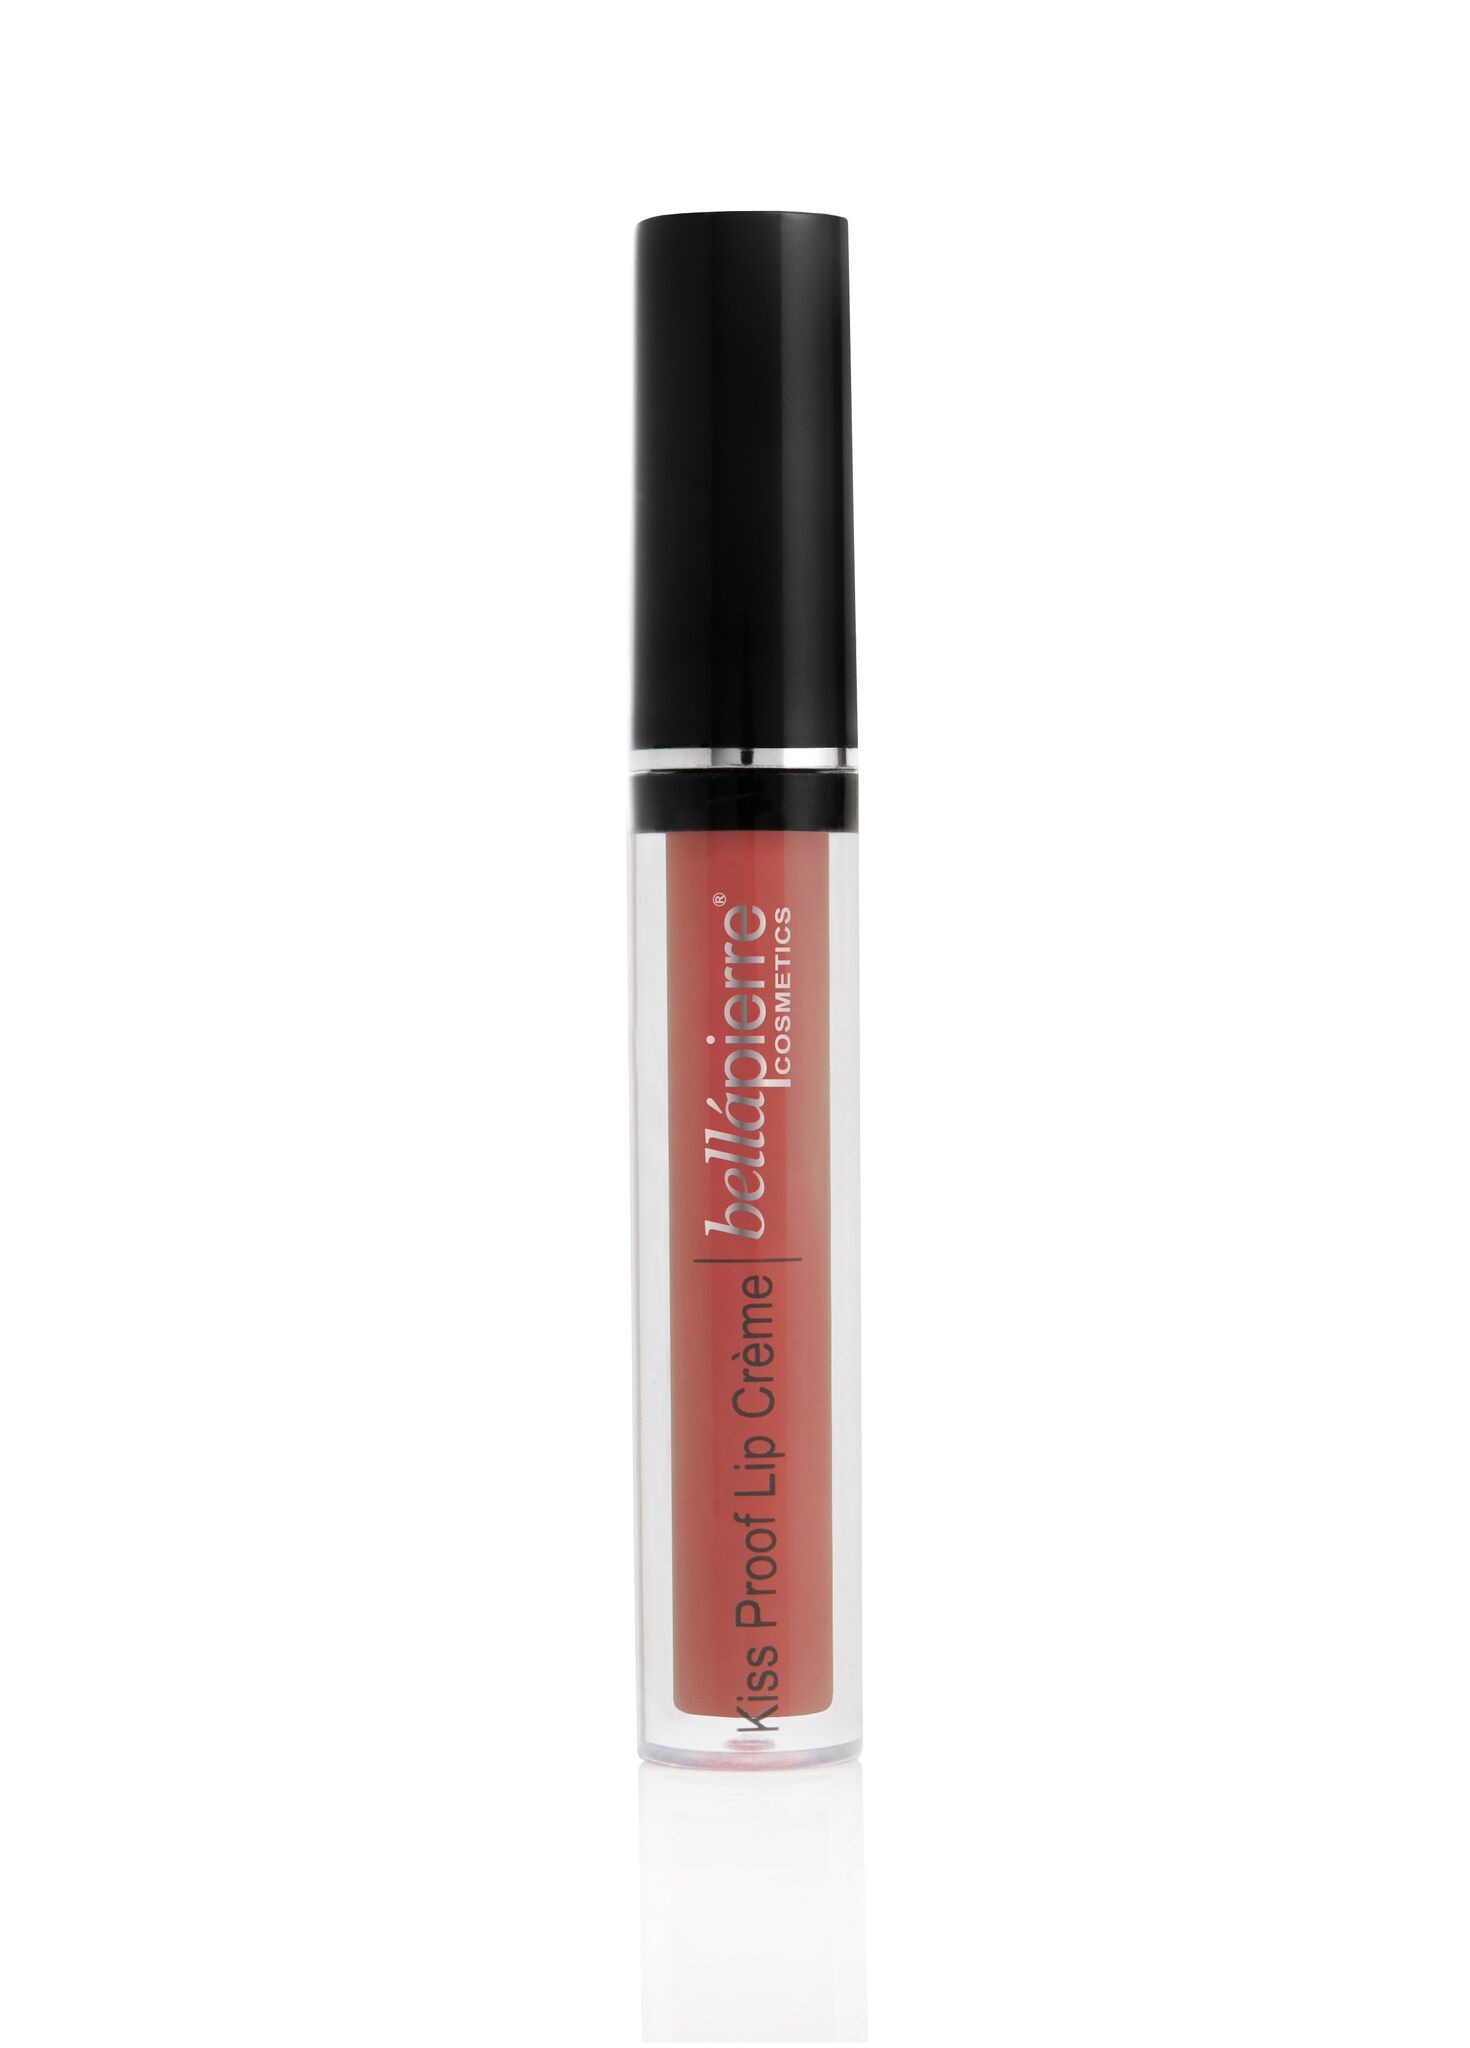 Kiss Proof Lip Creme by Bellapierre #22